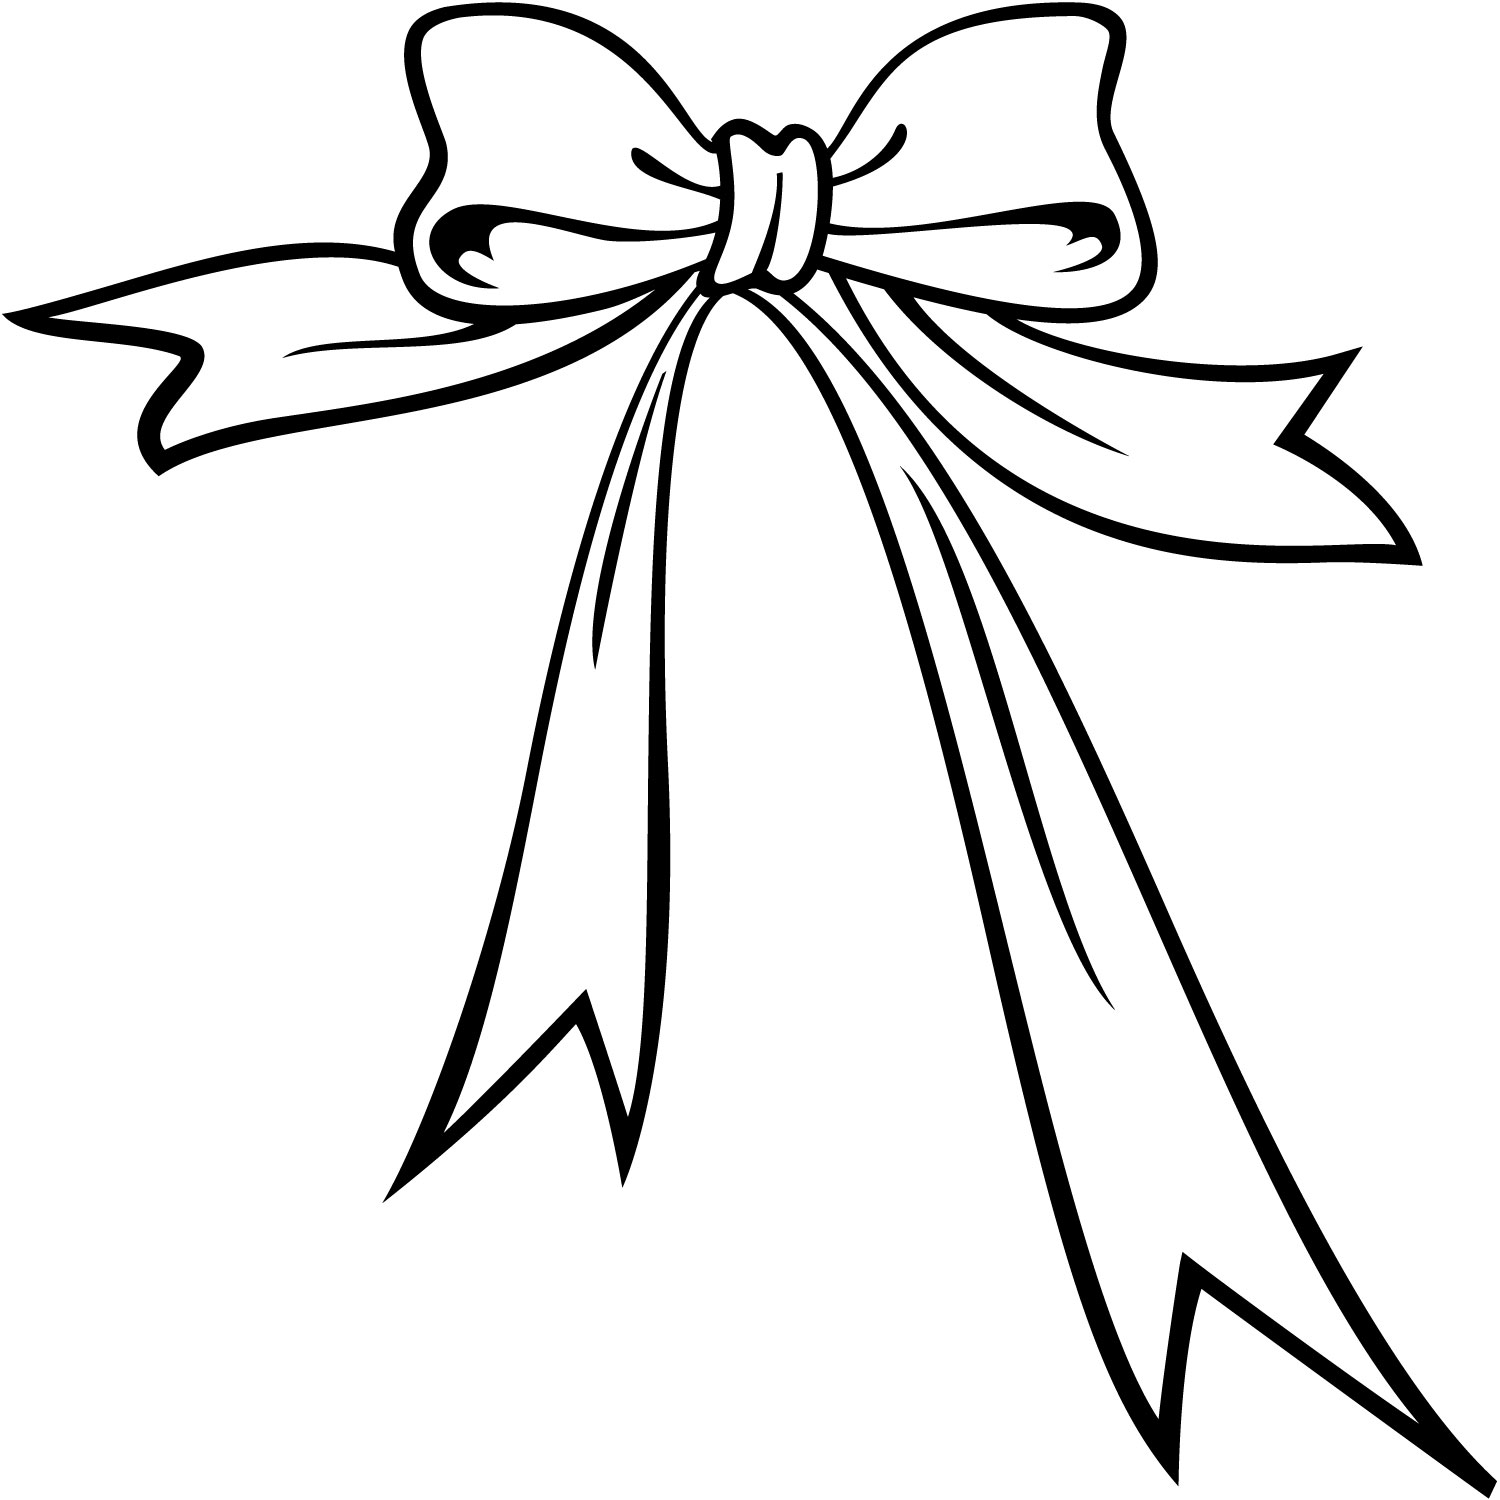 1500x1500 Black And White Bow Clip Art